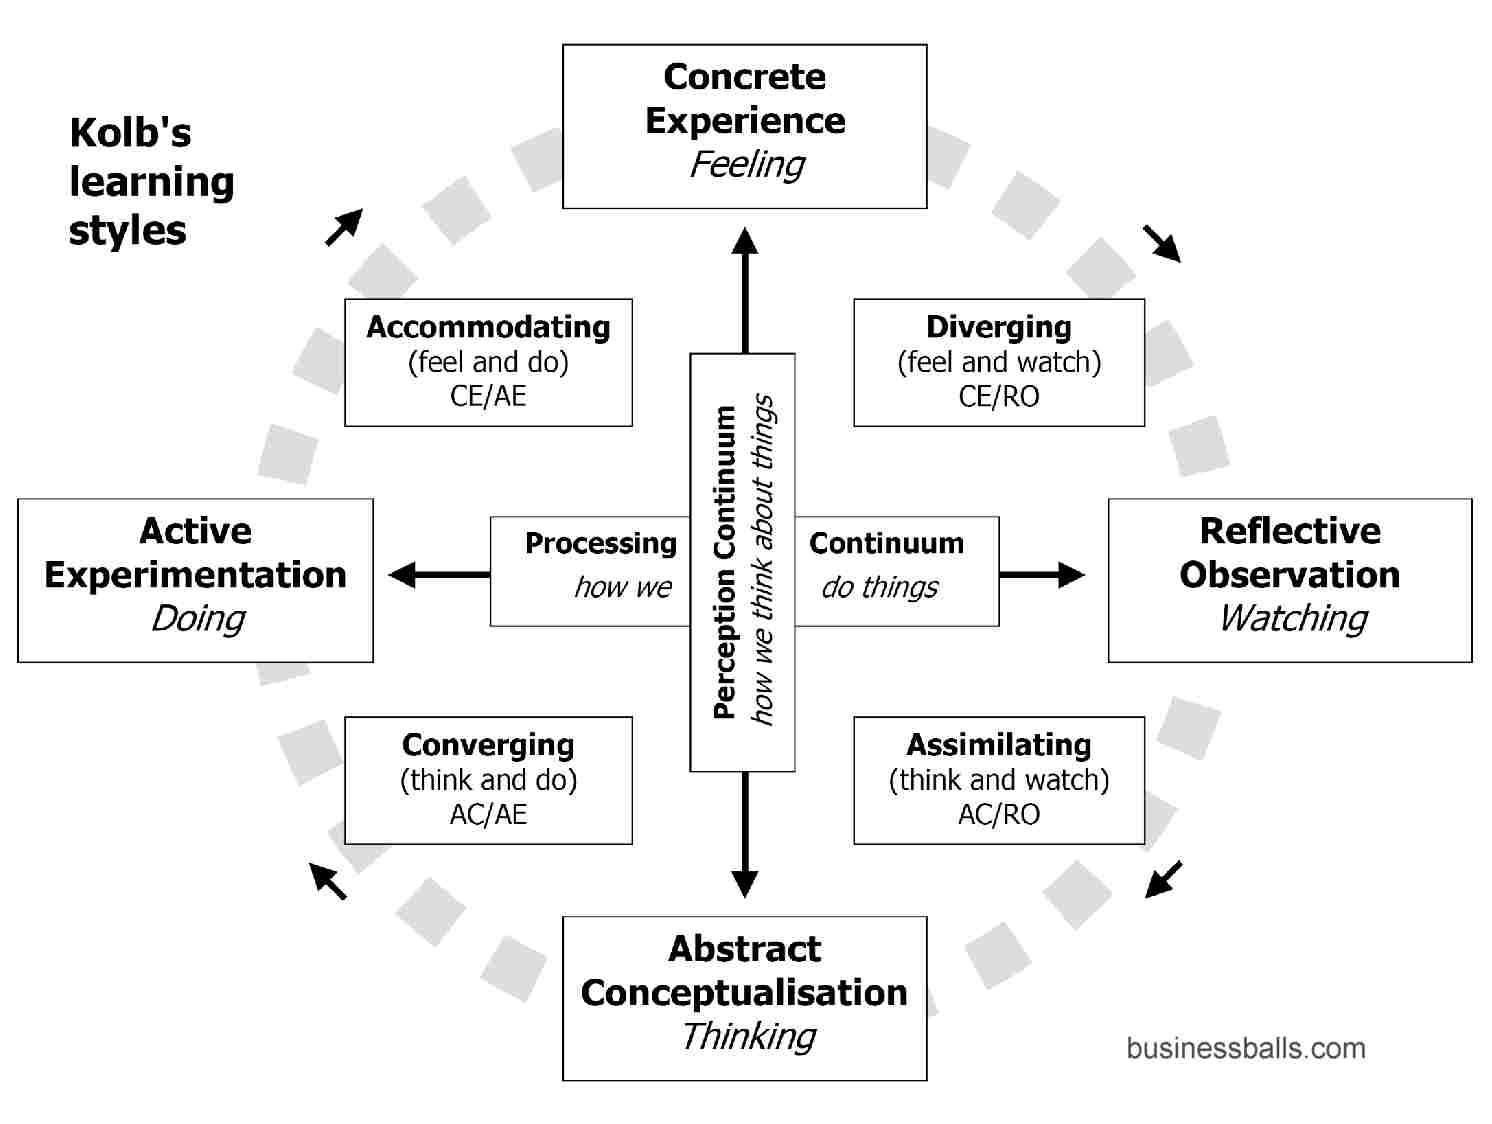 reflective practice theory methods tips and guide to using work and how we learn best in a practical sense moving between active and reflective modes and specifically through the stages shown in the diagram